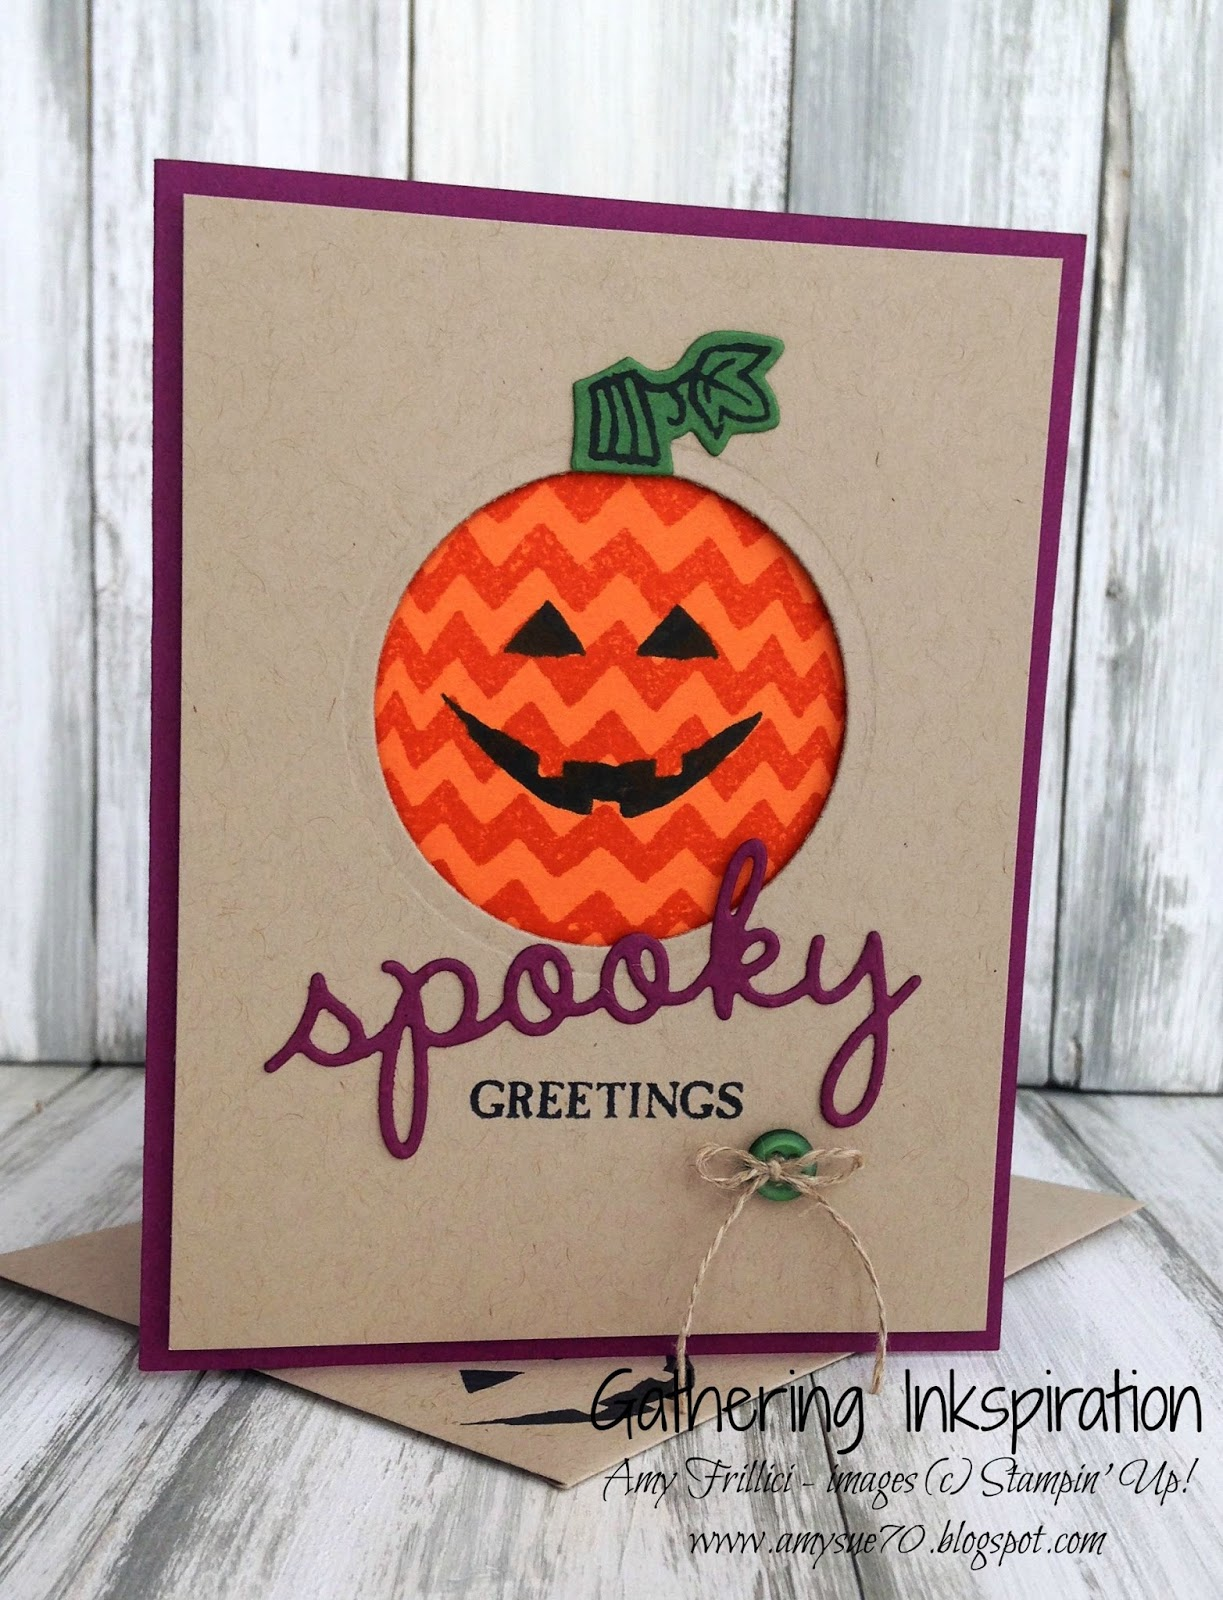 Gathering Inkspiration: Sparkly Seasons    Spooky Greetings